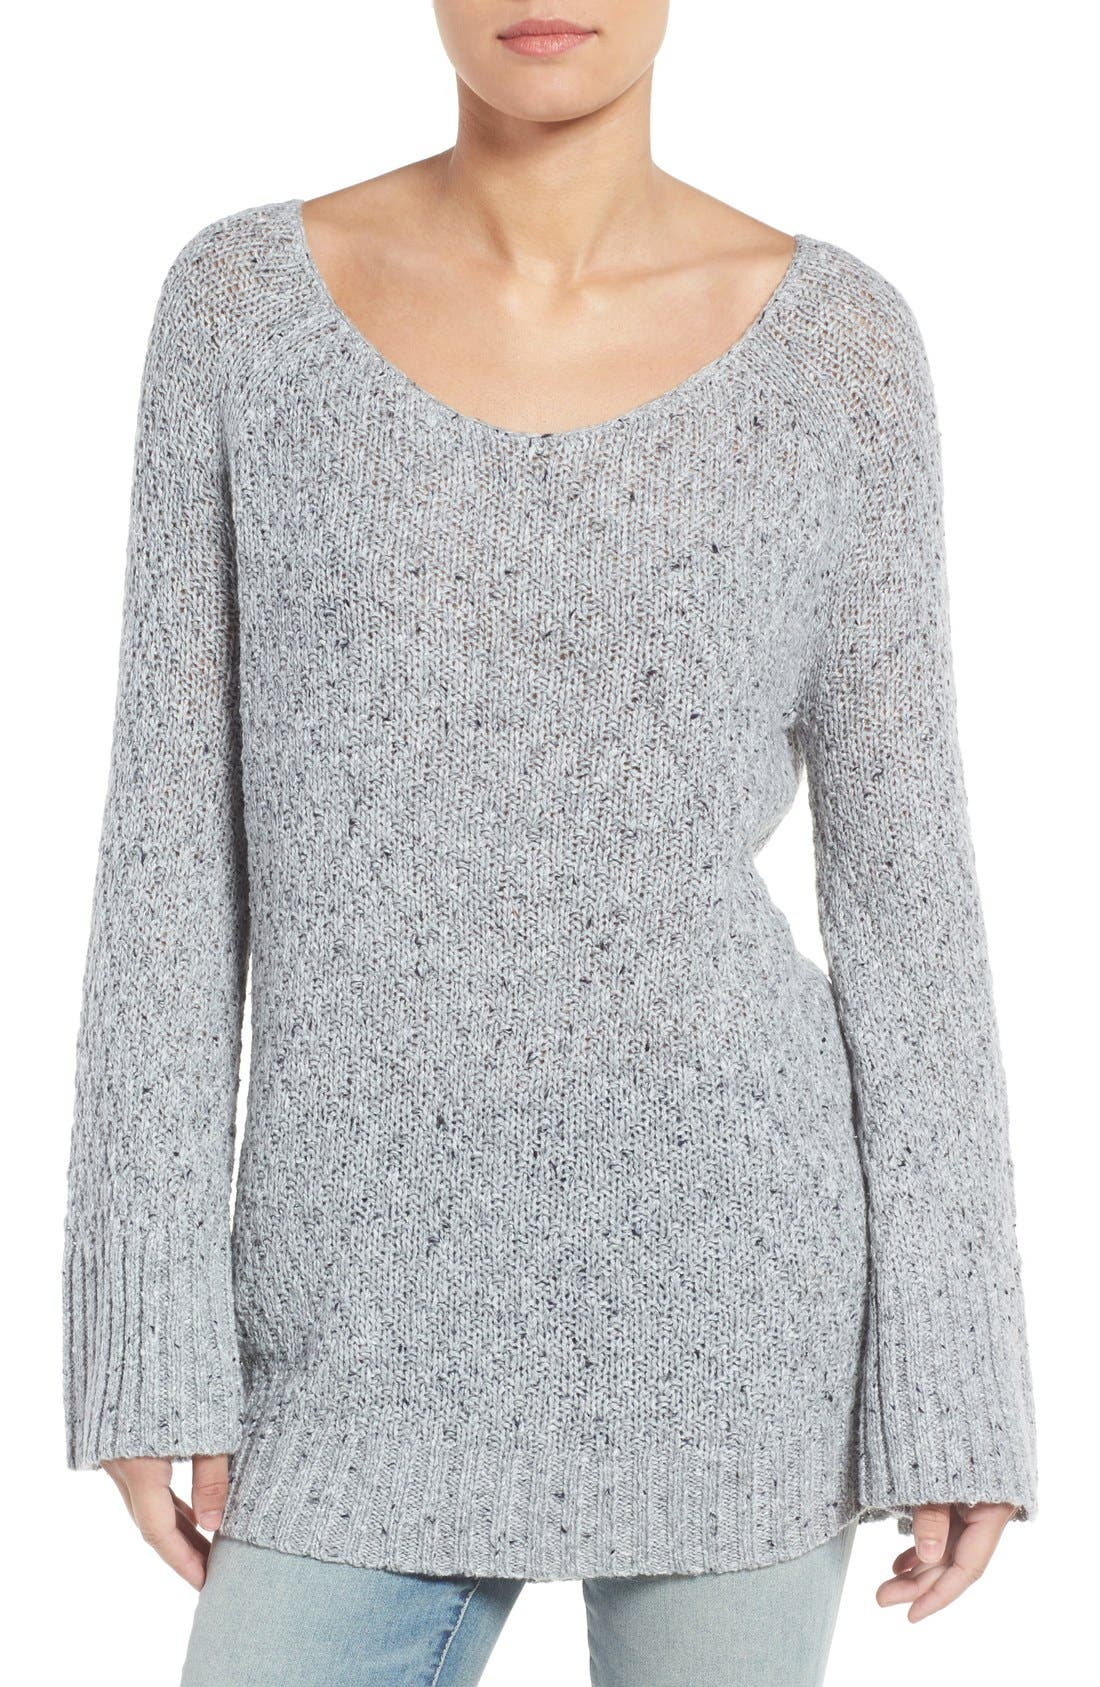 Alternate Image 1 Selected - Hinge Slouchy Tunic Sweater